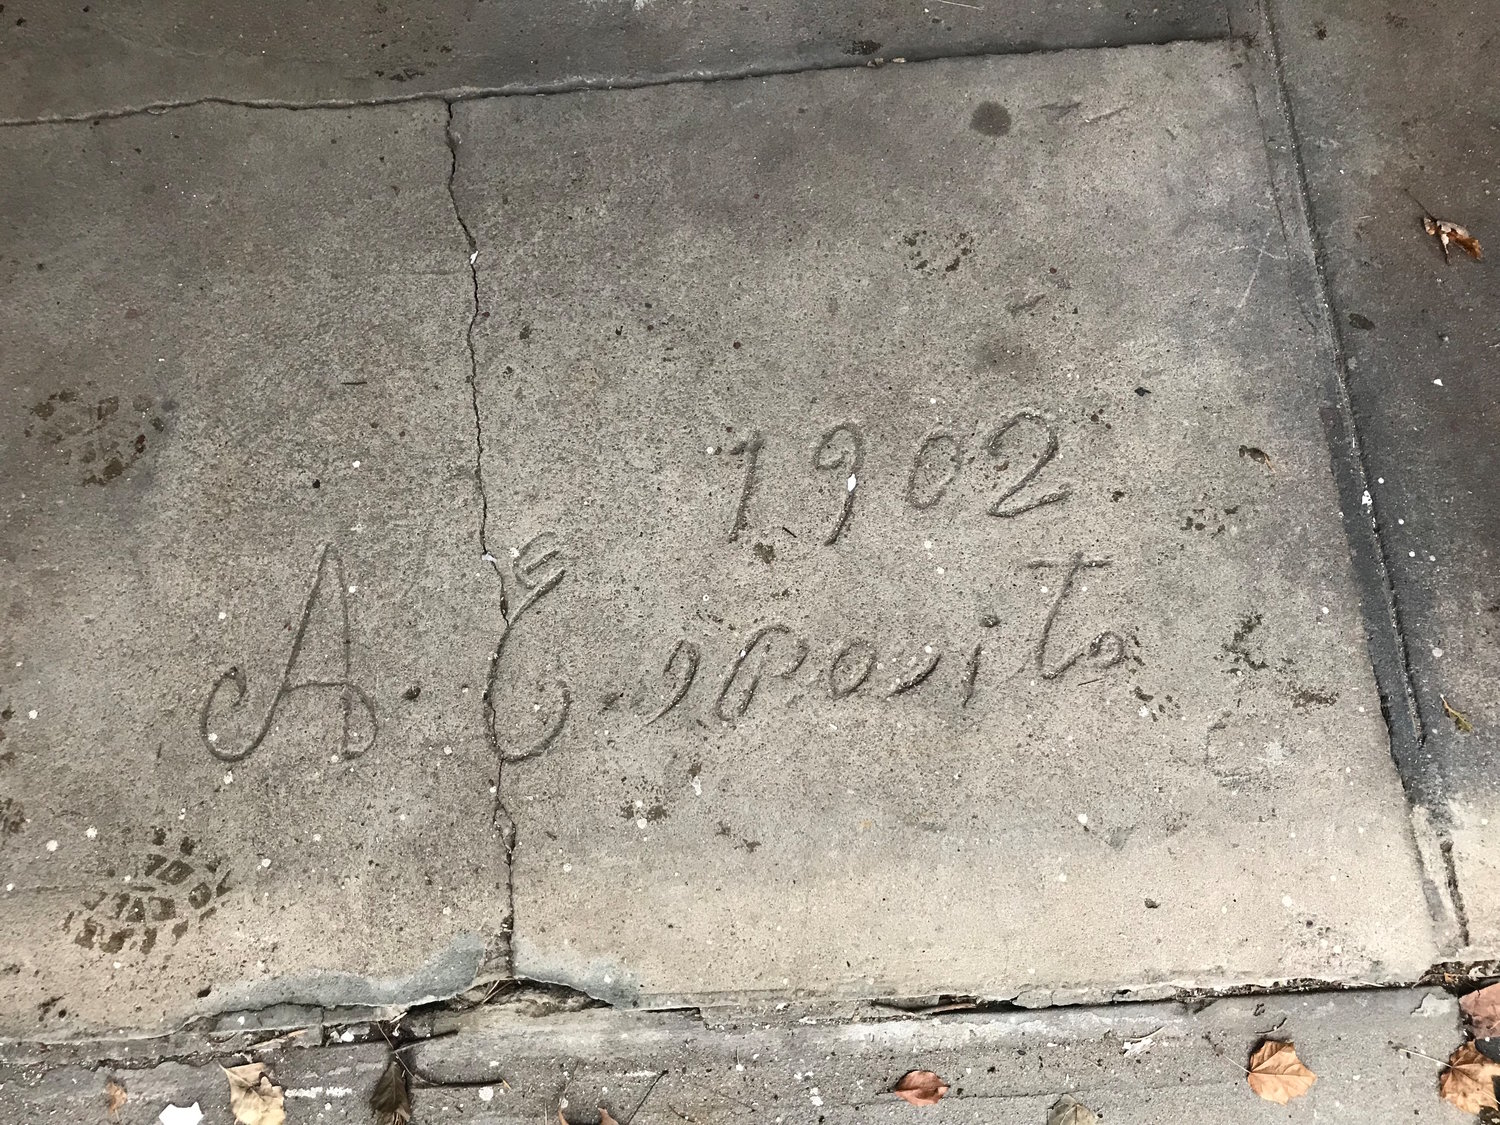 In the stable, someone scrawled an illegible signature and the year, 1902, in the concrete.